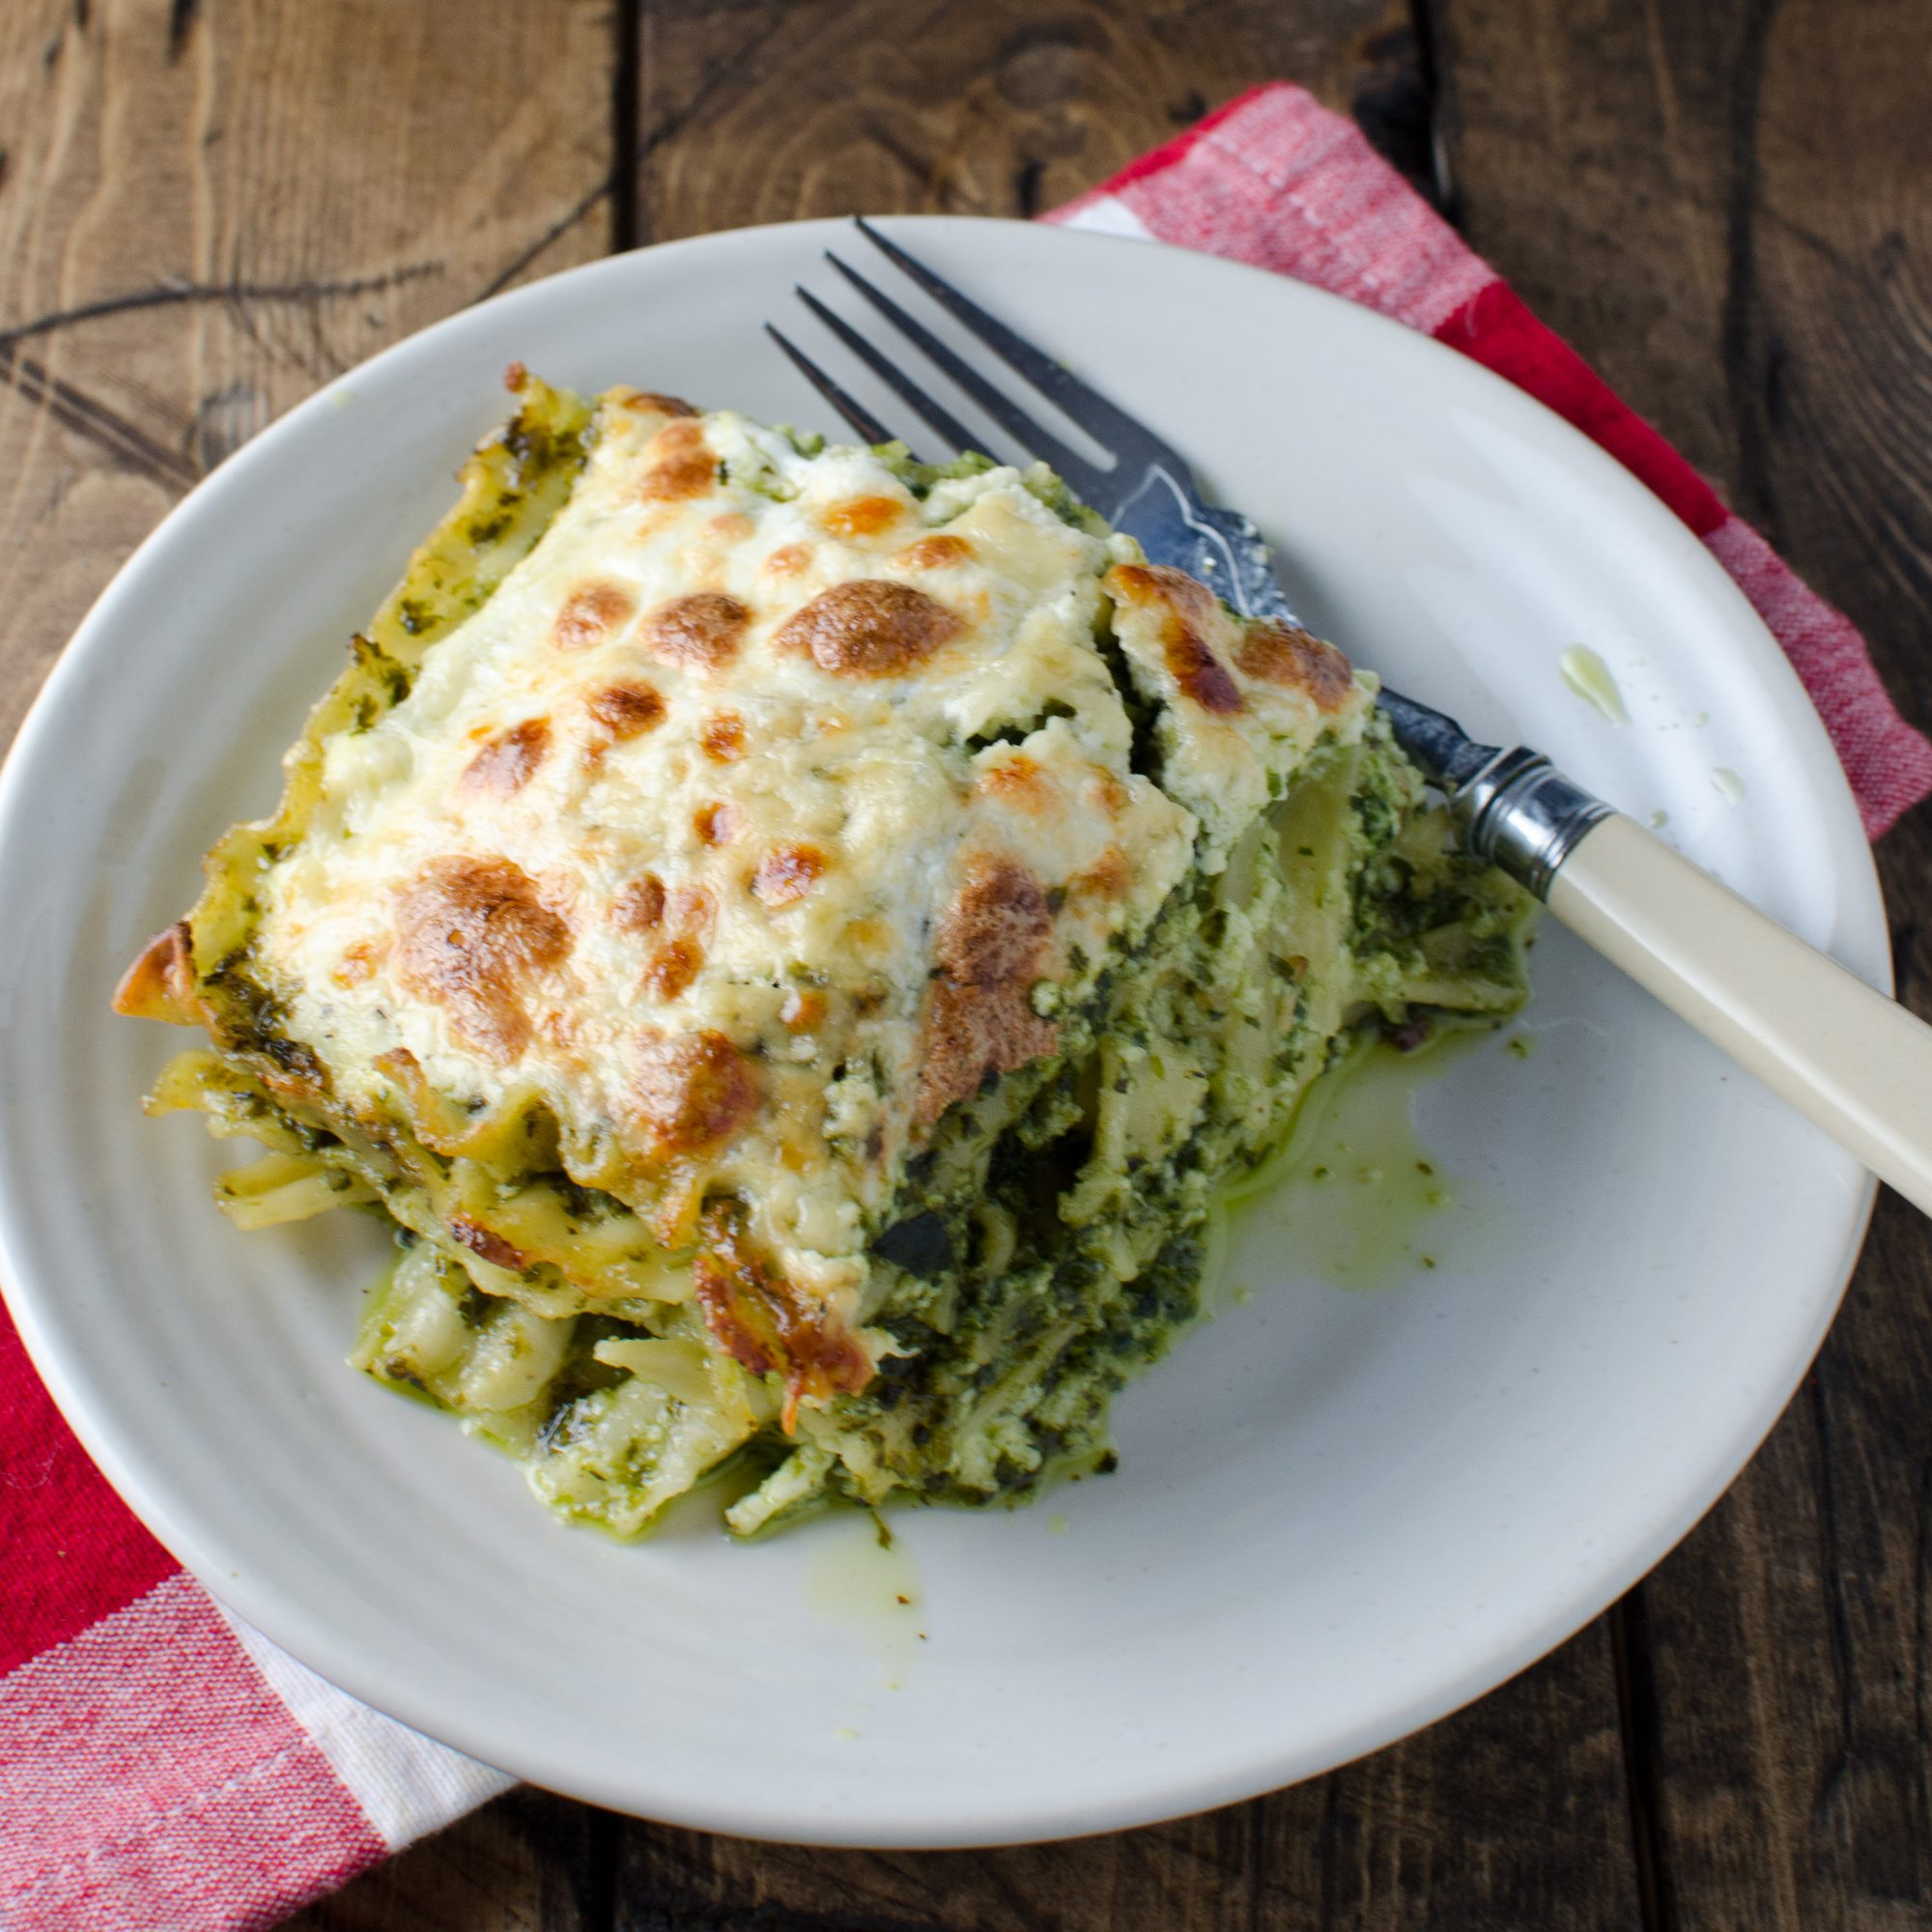 Fast-and-Easy Pesto Lasagna